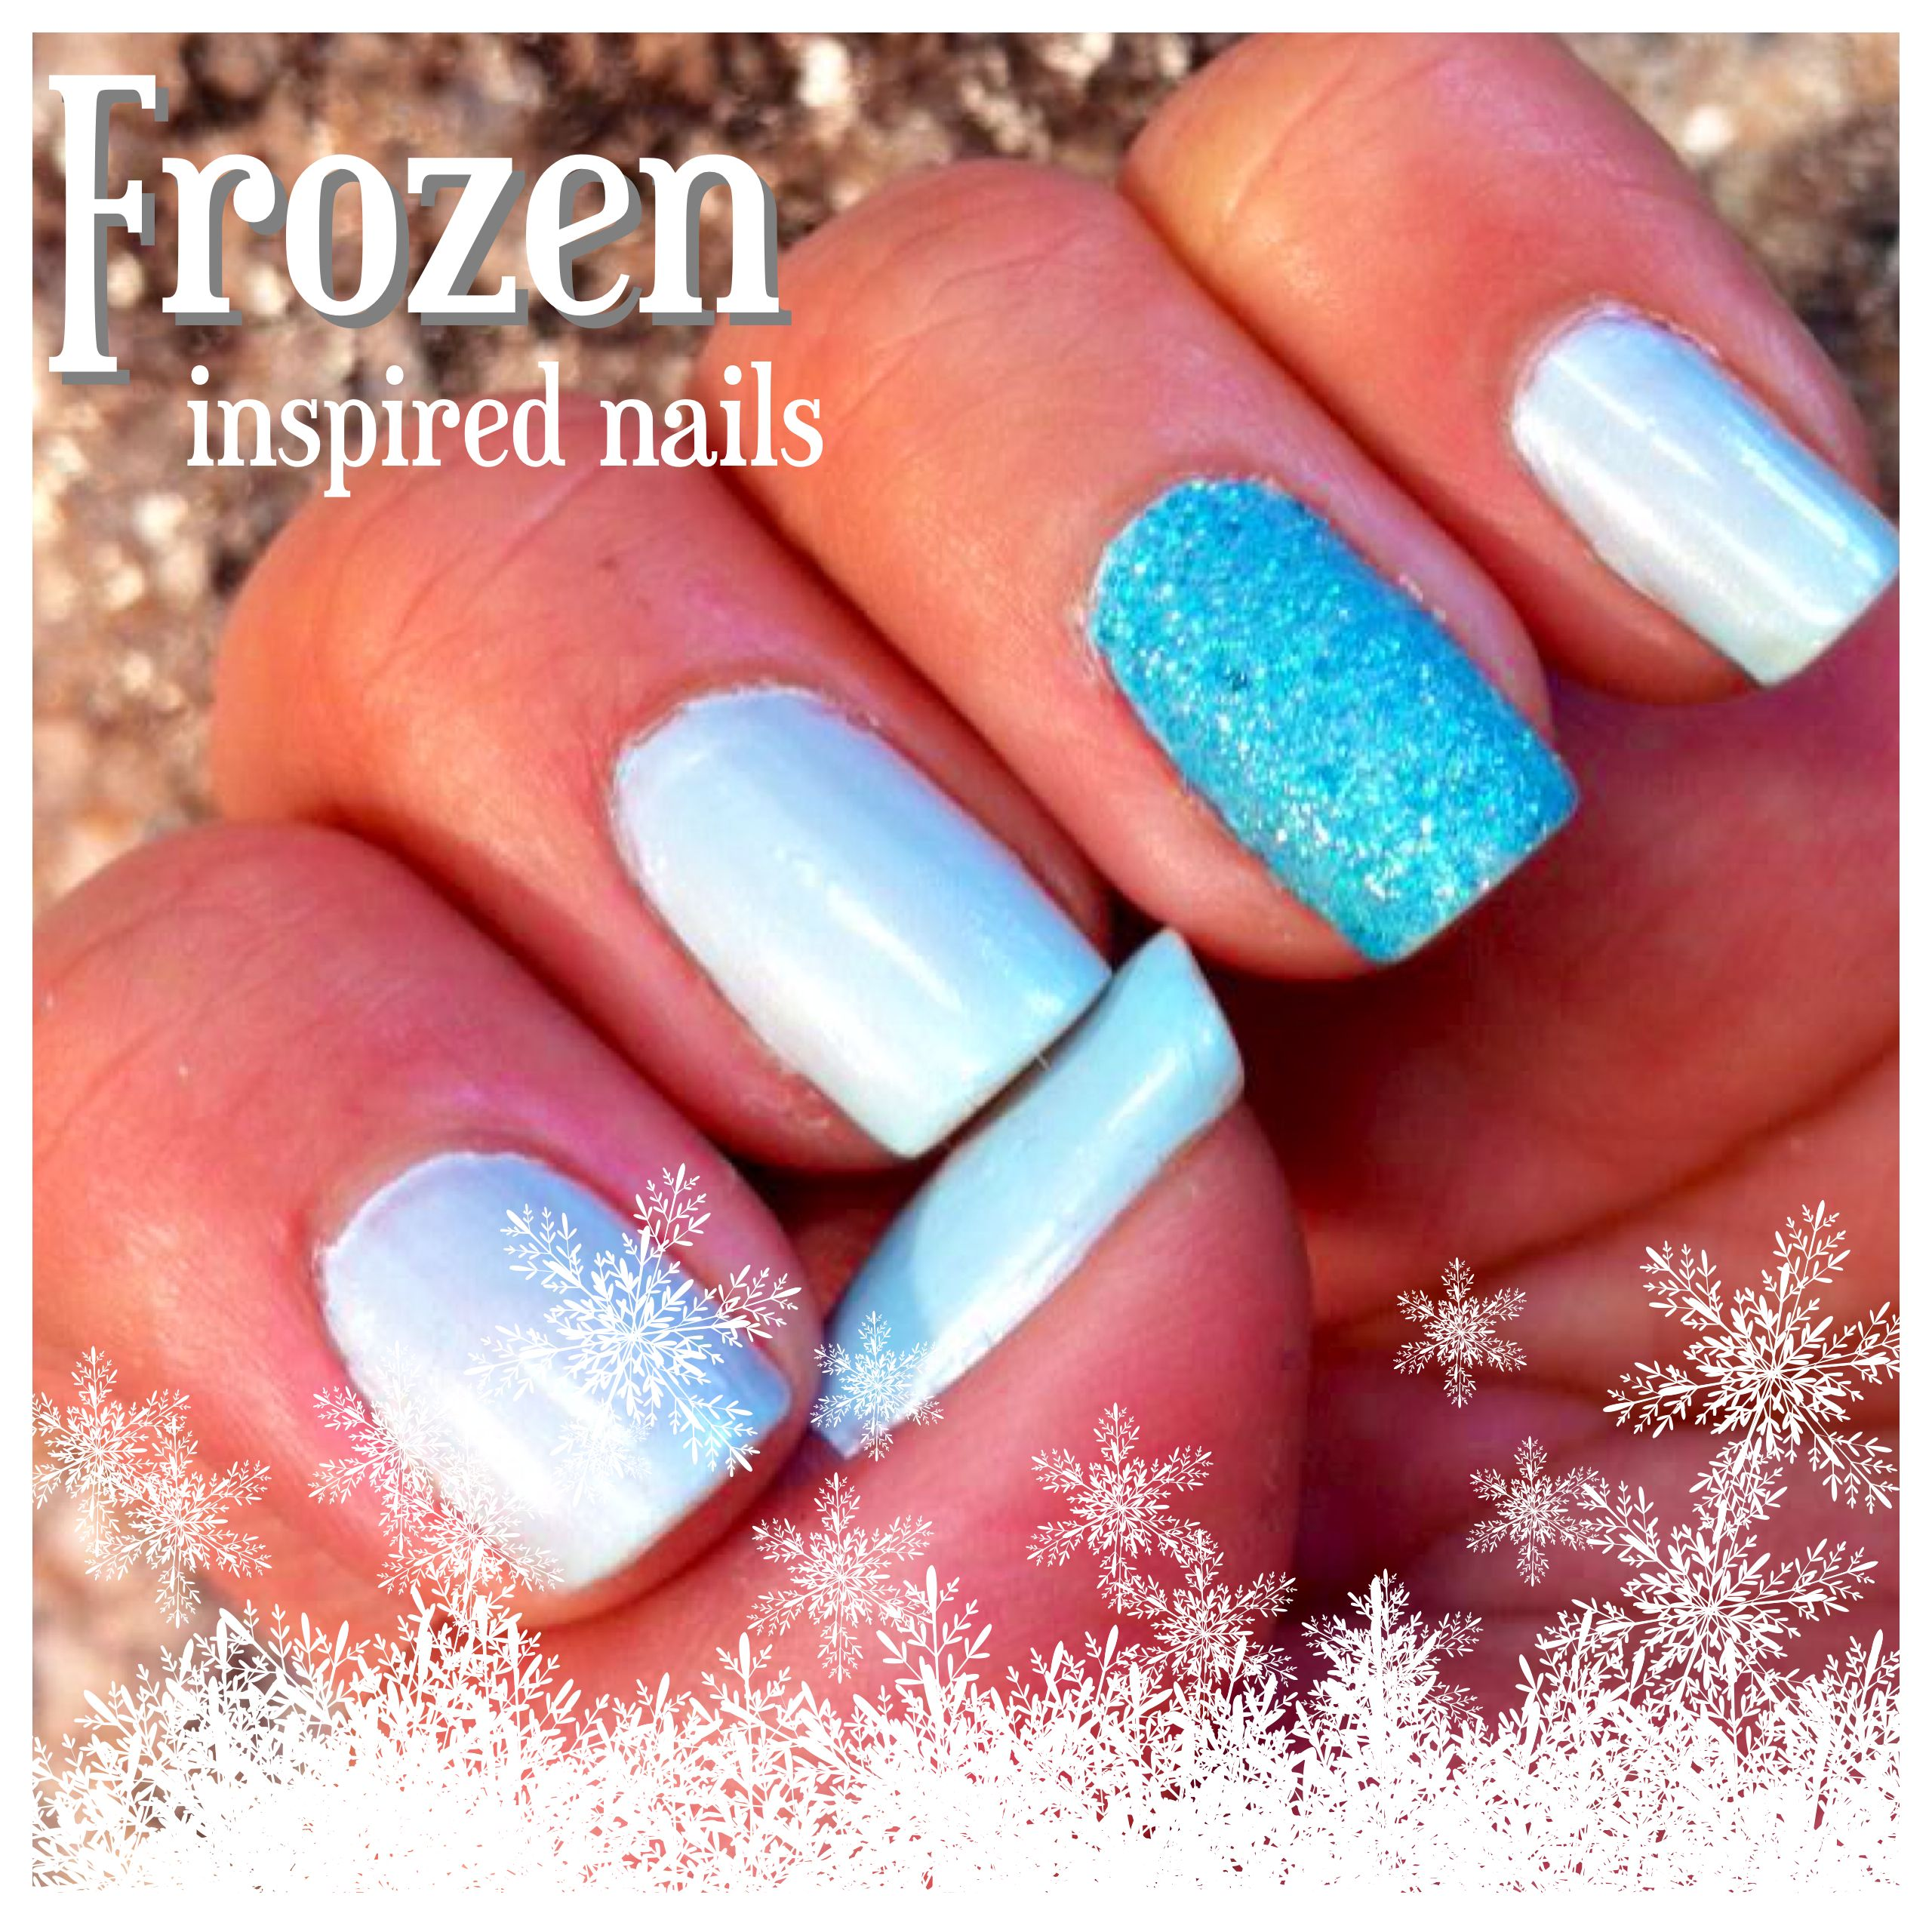 Frozen inspired nail colors   nails   Pinterest